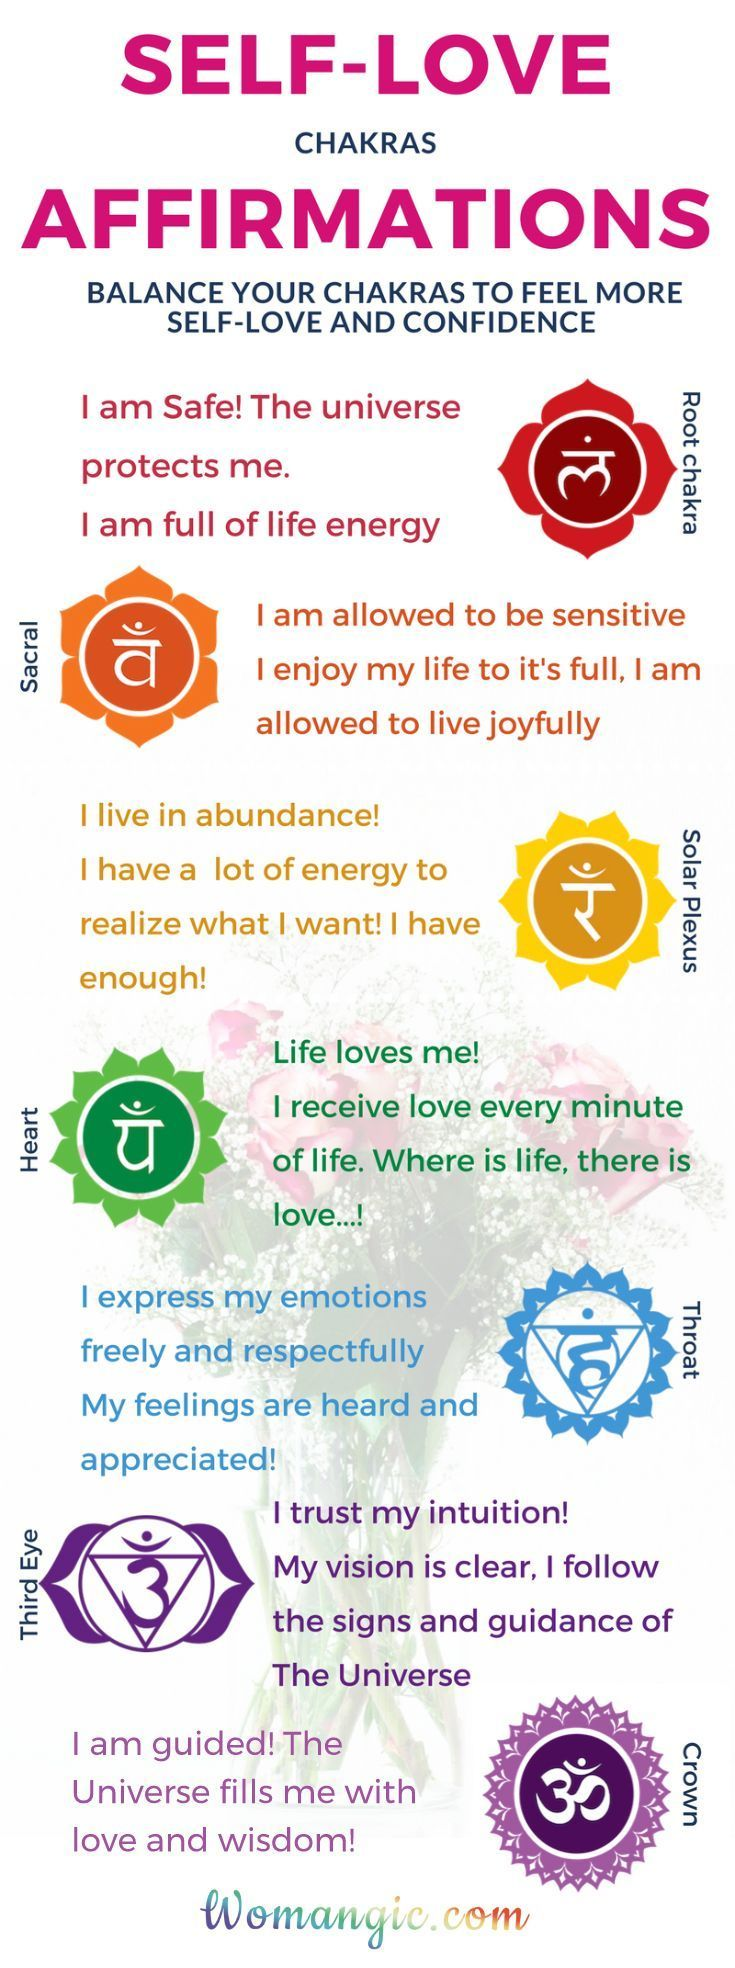 Chakra, Chakra Balancing, Root, Sacral, Solar Plexus, Heart, Throat, Third Eye, Crown, Chakra meaning, Chakra affirmation, Chakra Mantra, Chakra Energy, Energy, Chakra articles, Chakra Healing, Chakra Cleanse, Chakra Illustration, Chakra Base, Chakra Images, Chakra Signification. Self-love | Women self-love | Self-love help | Self love ideas | Self love meditation | Self care | Mindset | Positive | Mindfulness | Self care routine | Self care ideas | Self care activities | Self care kit